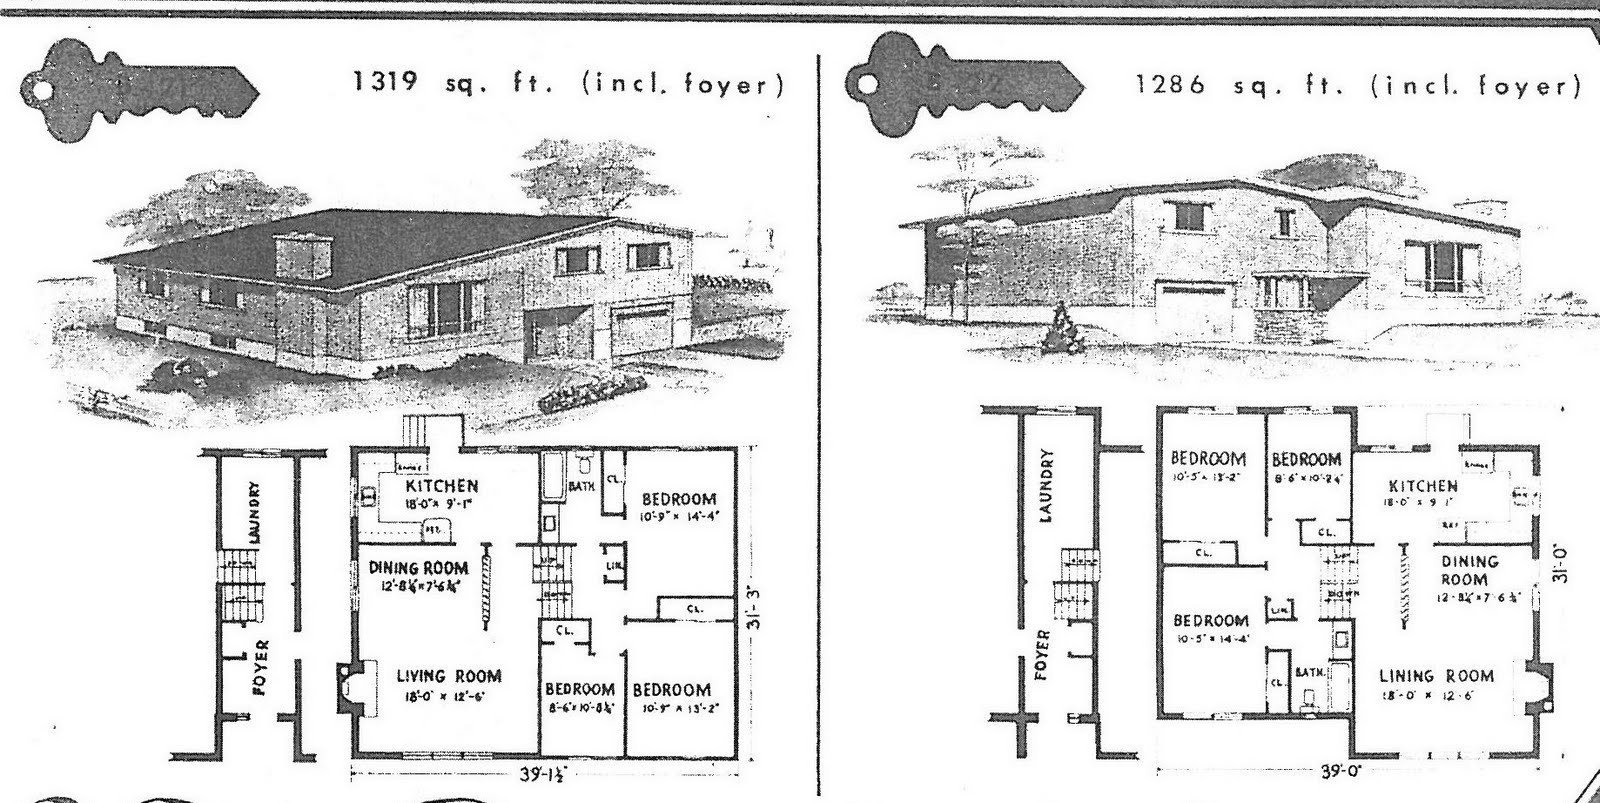 Traditional Japanese House Floor Plans Mid Century Modern And 1970s Era Ottawa How The Car